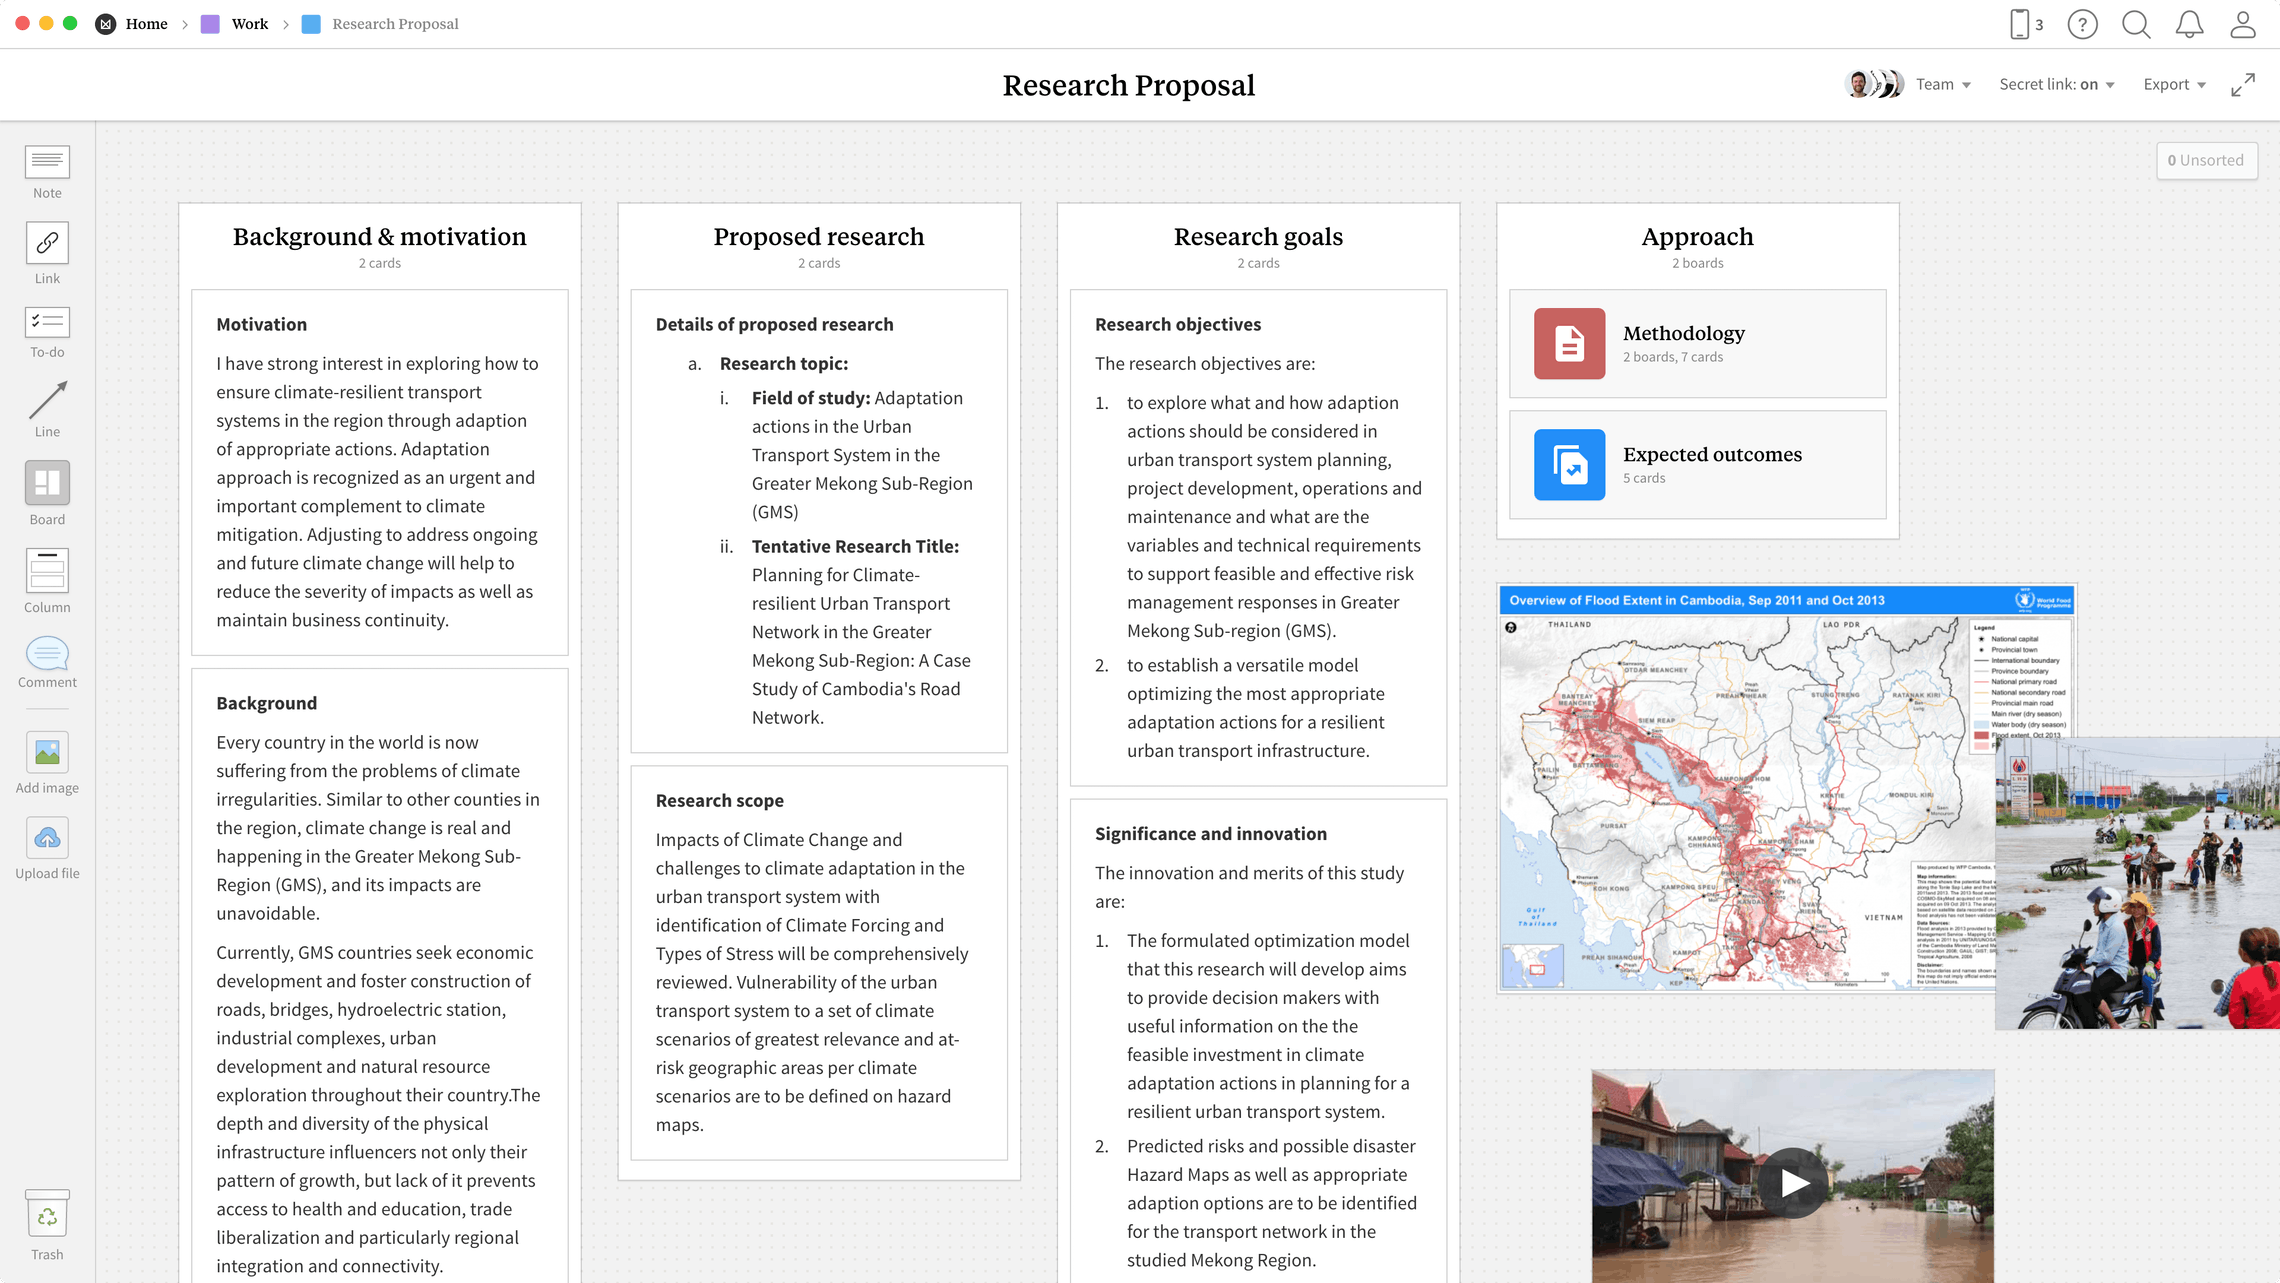 Research Proposal Template, within the Milanote app